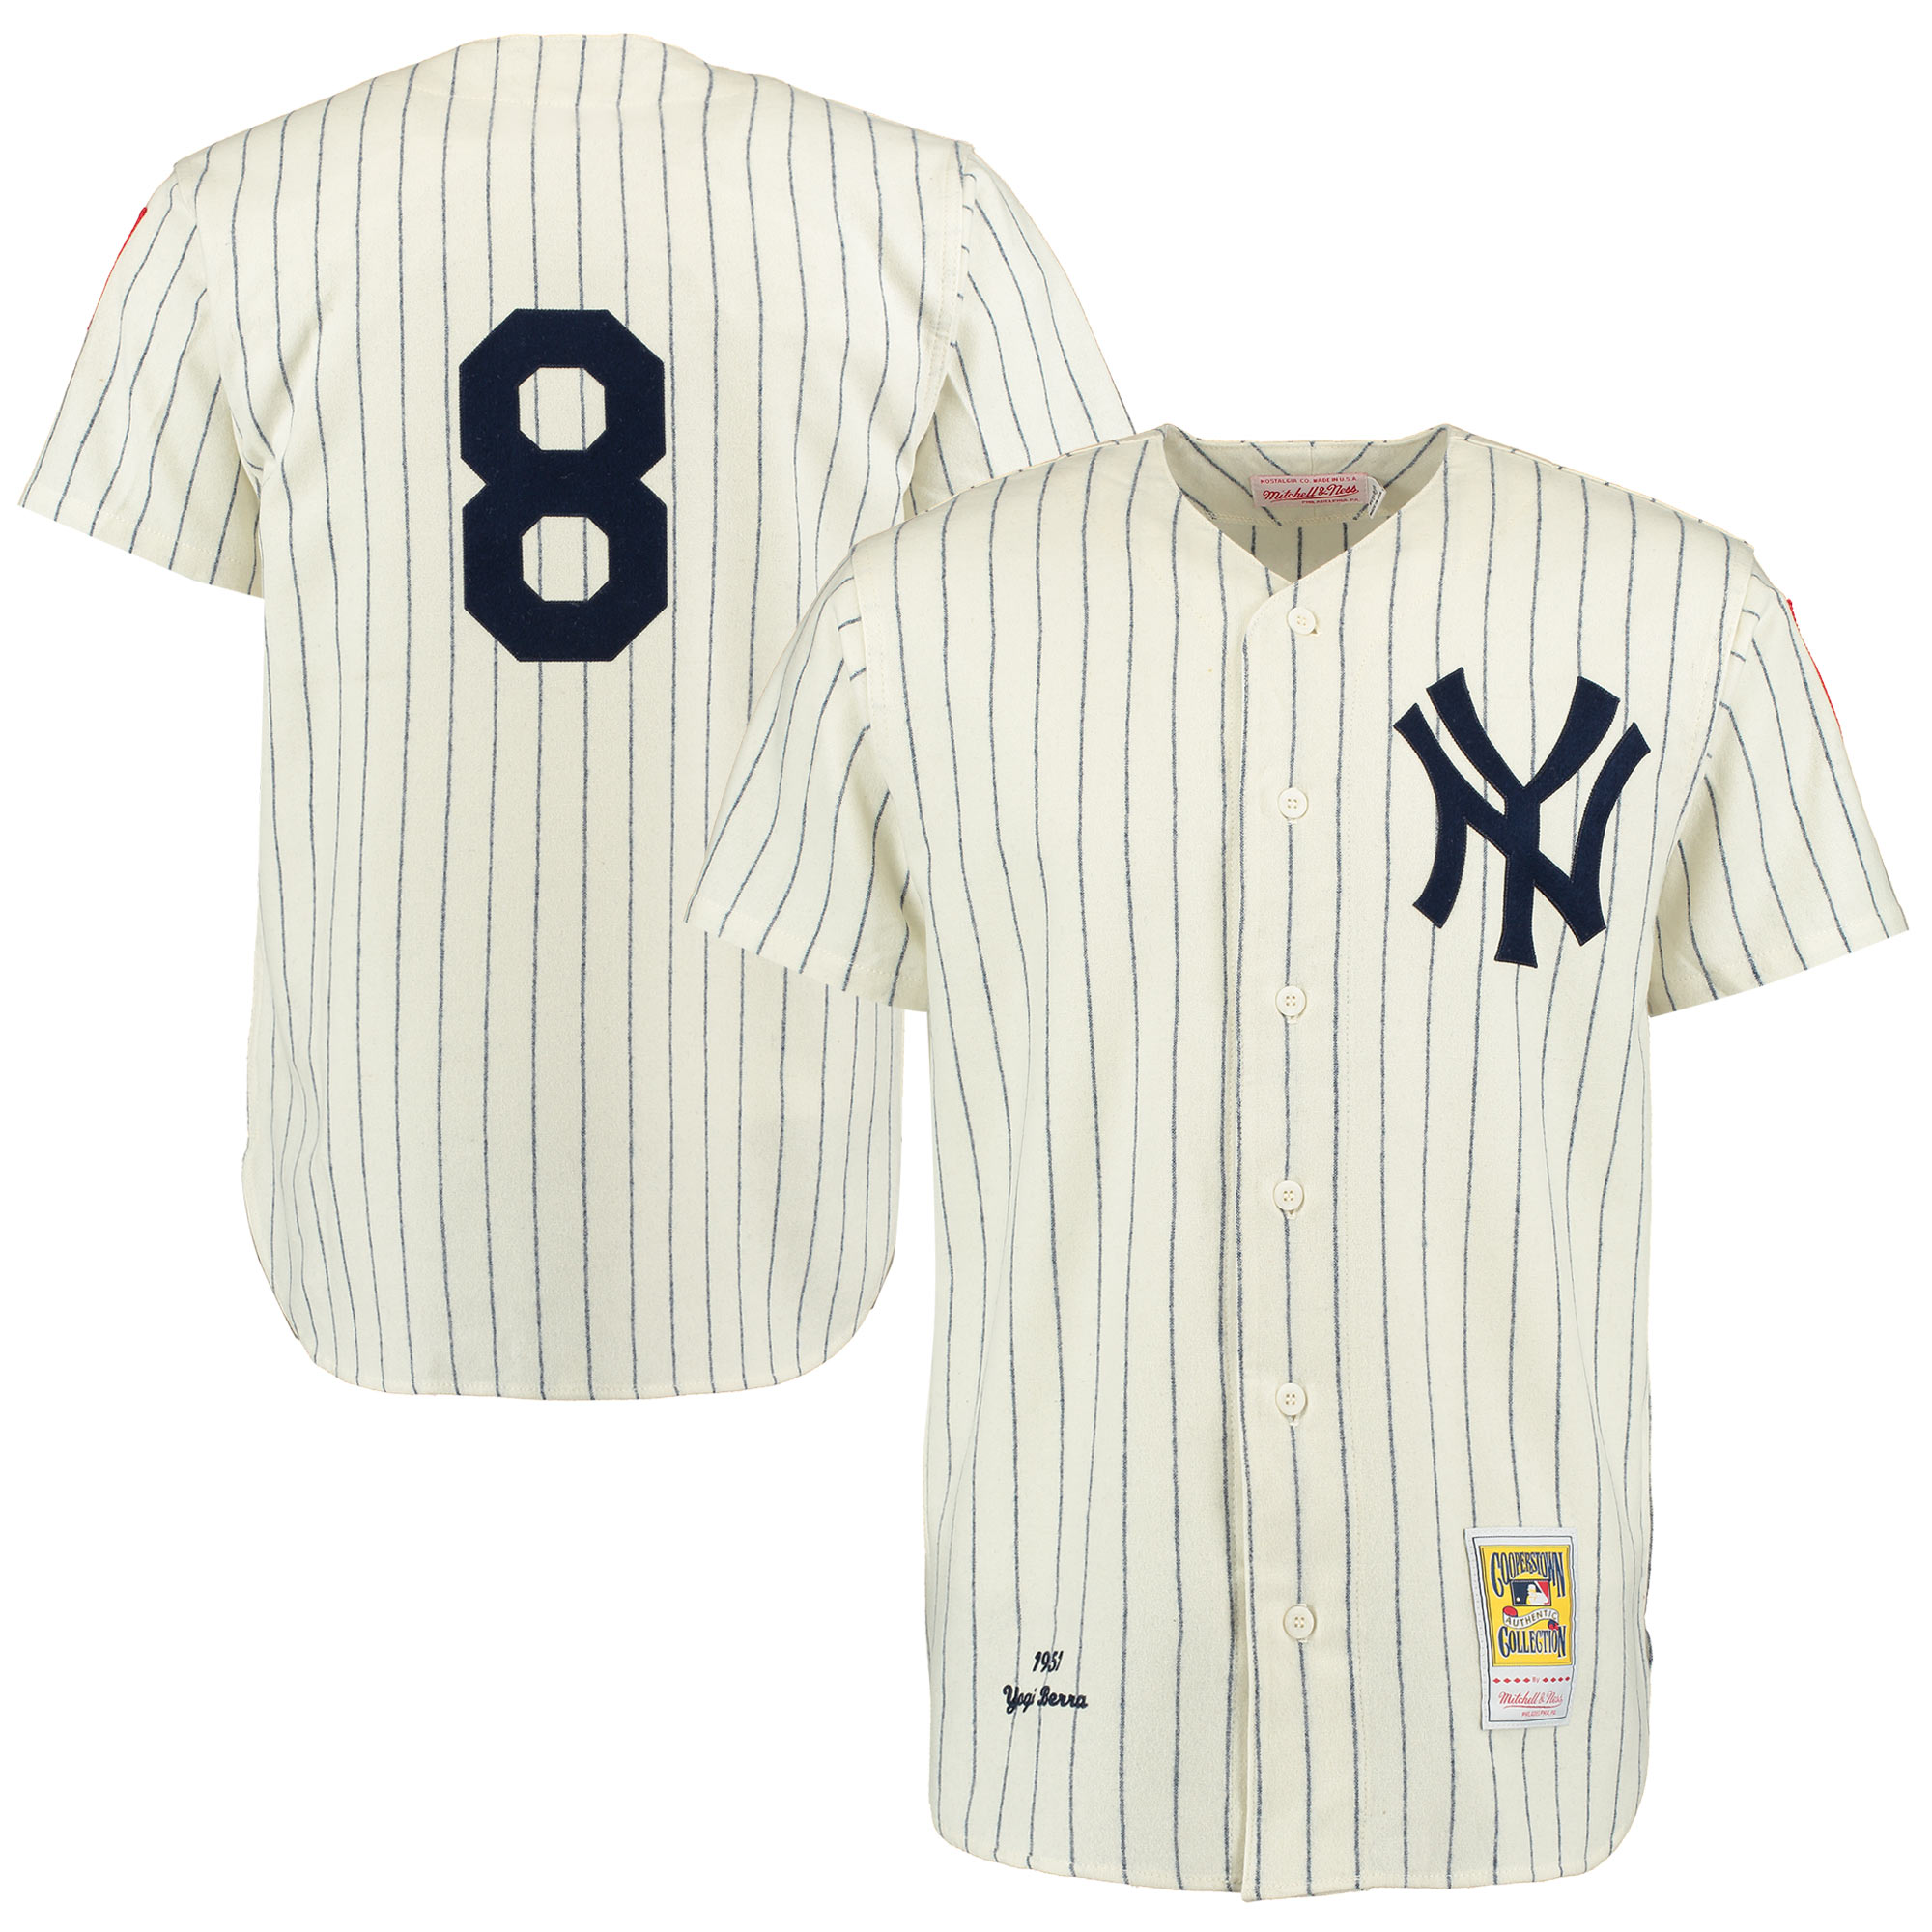 Yogi Berra New York Yankees Mitchell & Ness Throwback 1951 Authentic Jersey - Cream/Navy